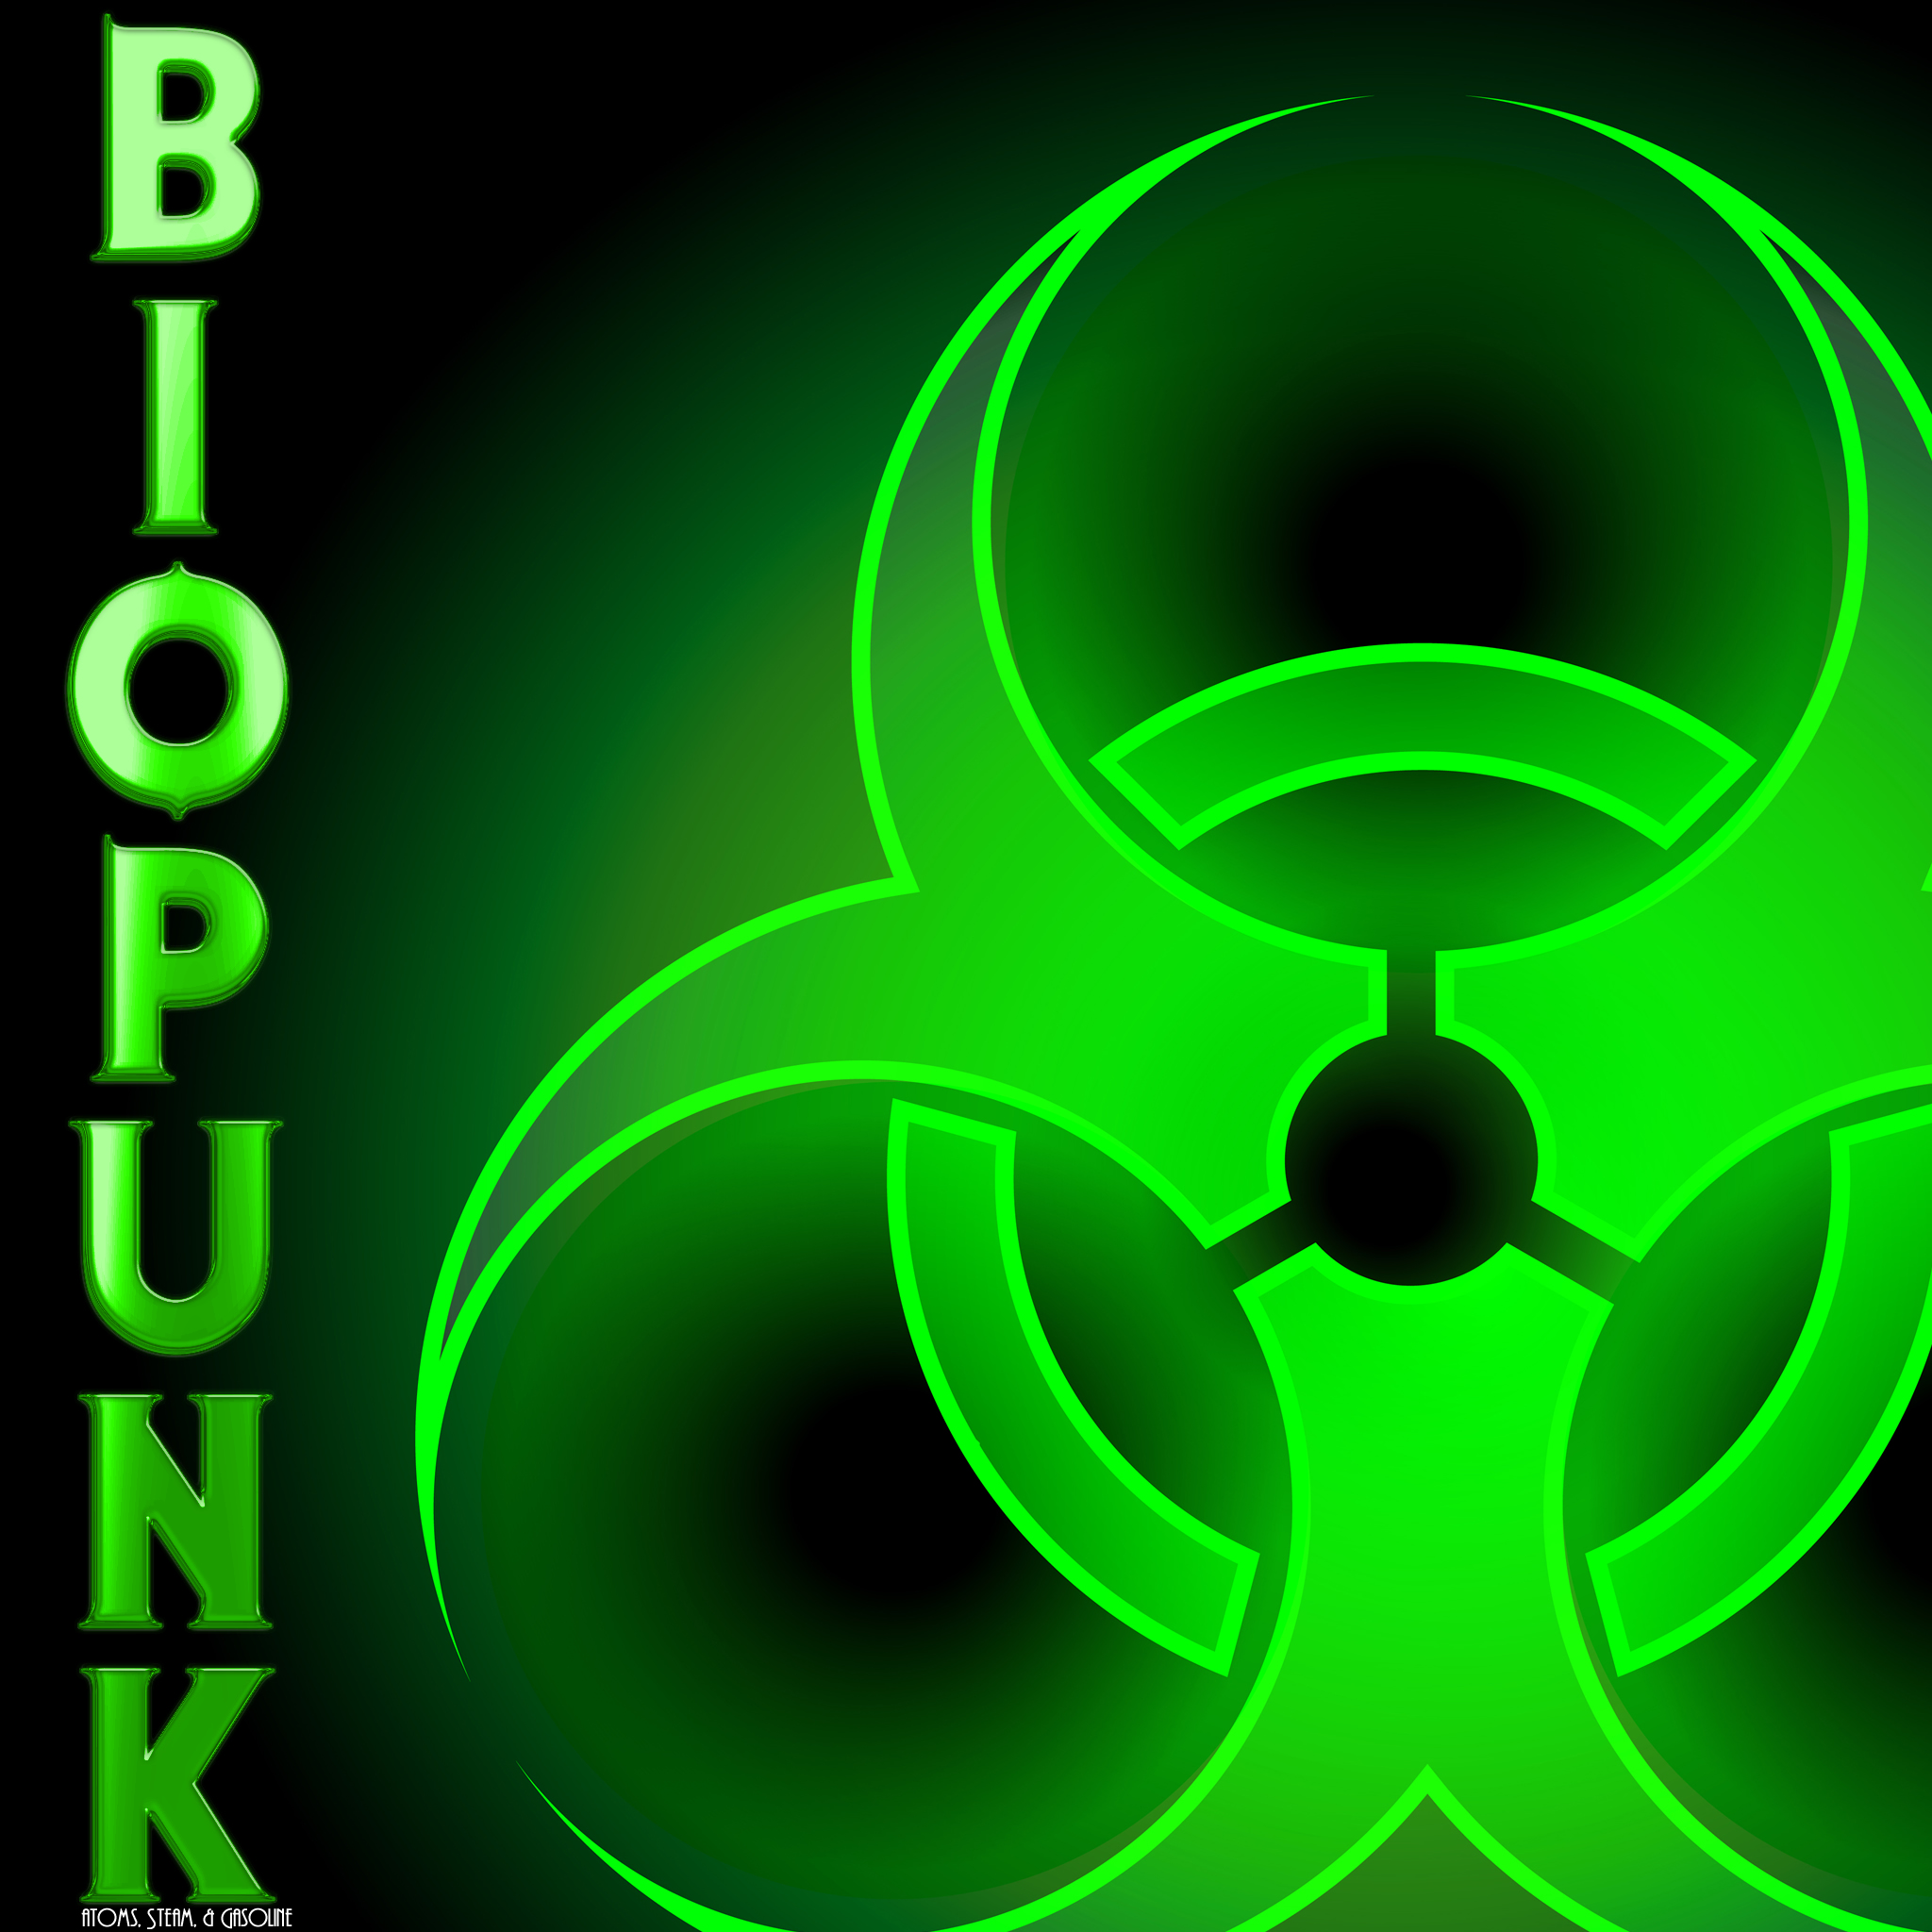 What is Biopunk?